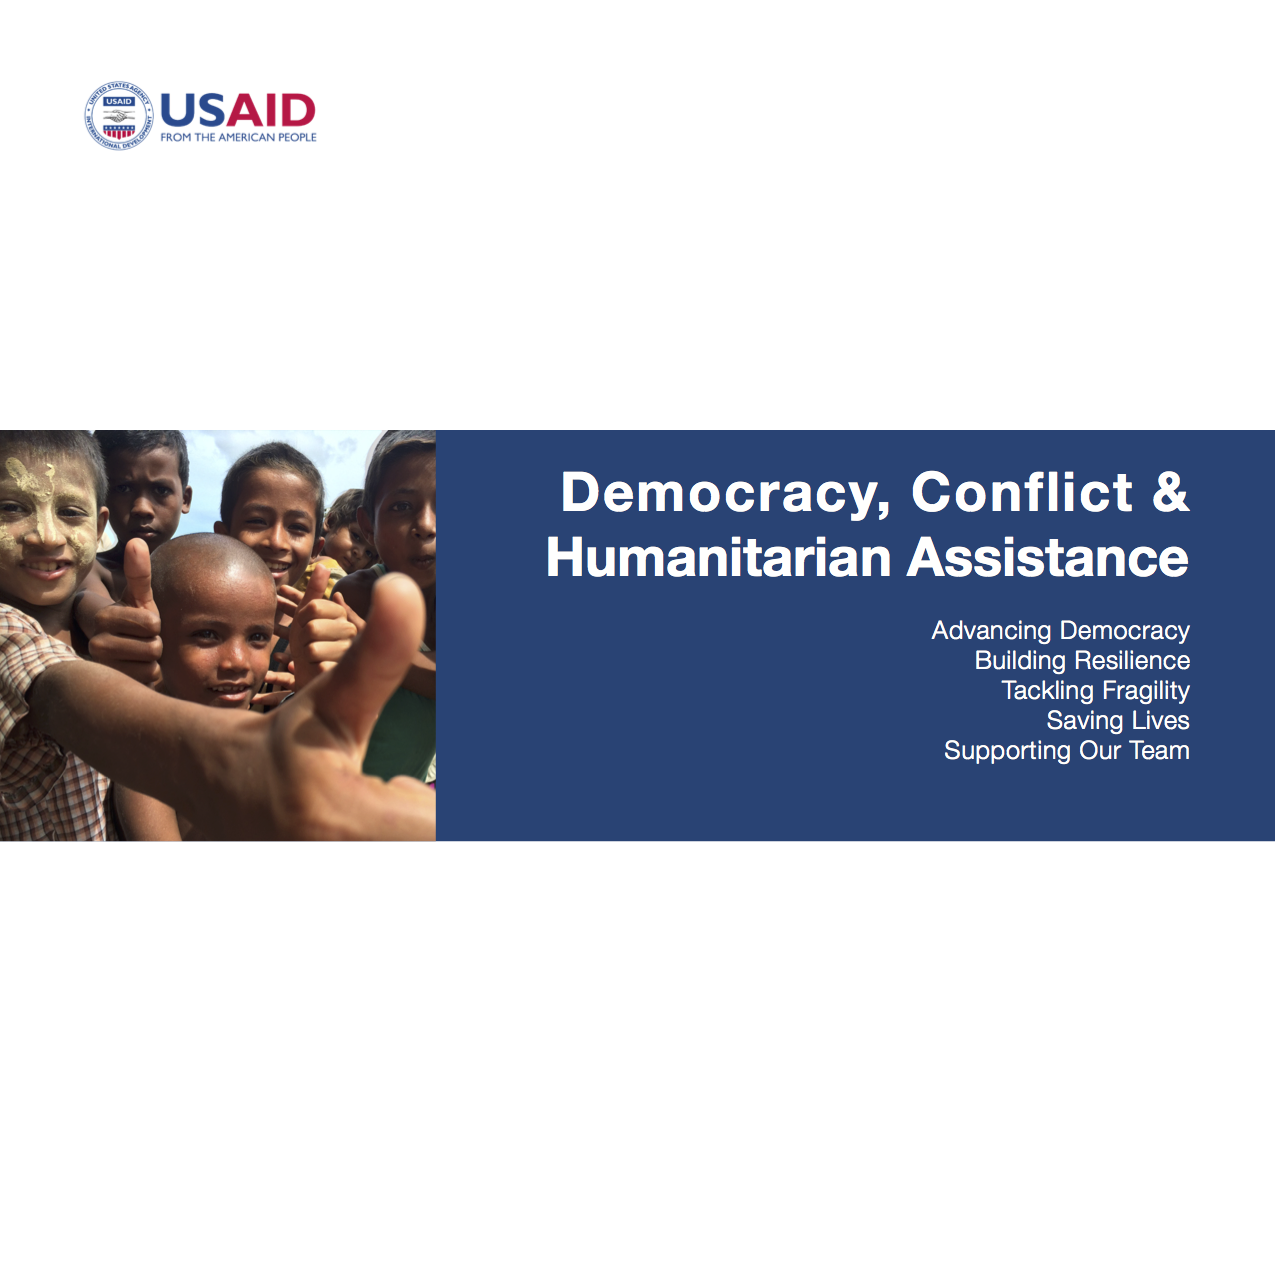 Democracy, Conflict, and Humanitarian Assistance: Advancing Democracy, Building Resilience, Tackling Fragility, Saving Lives.